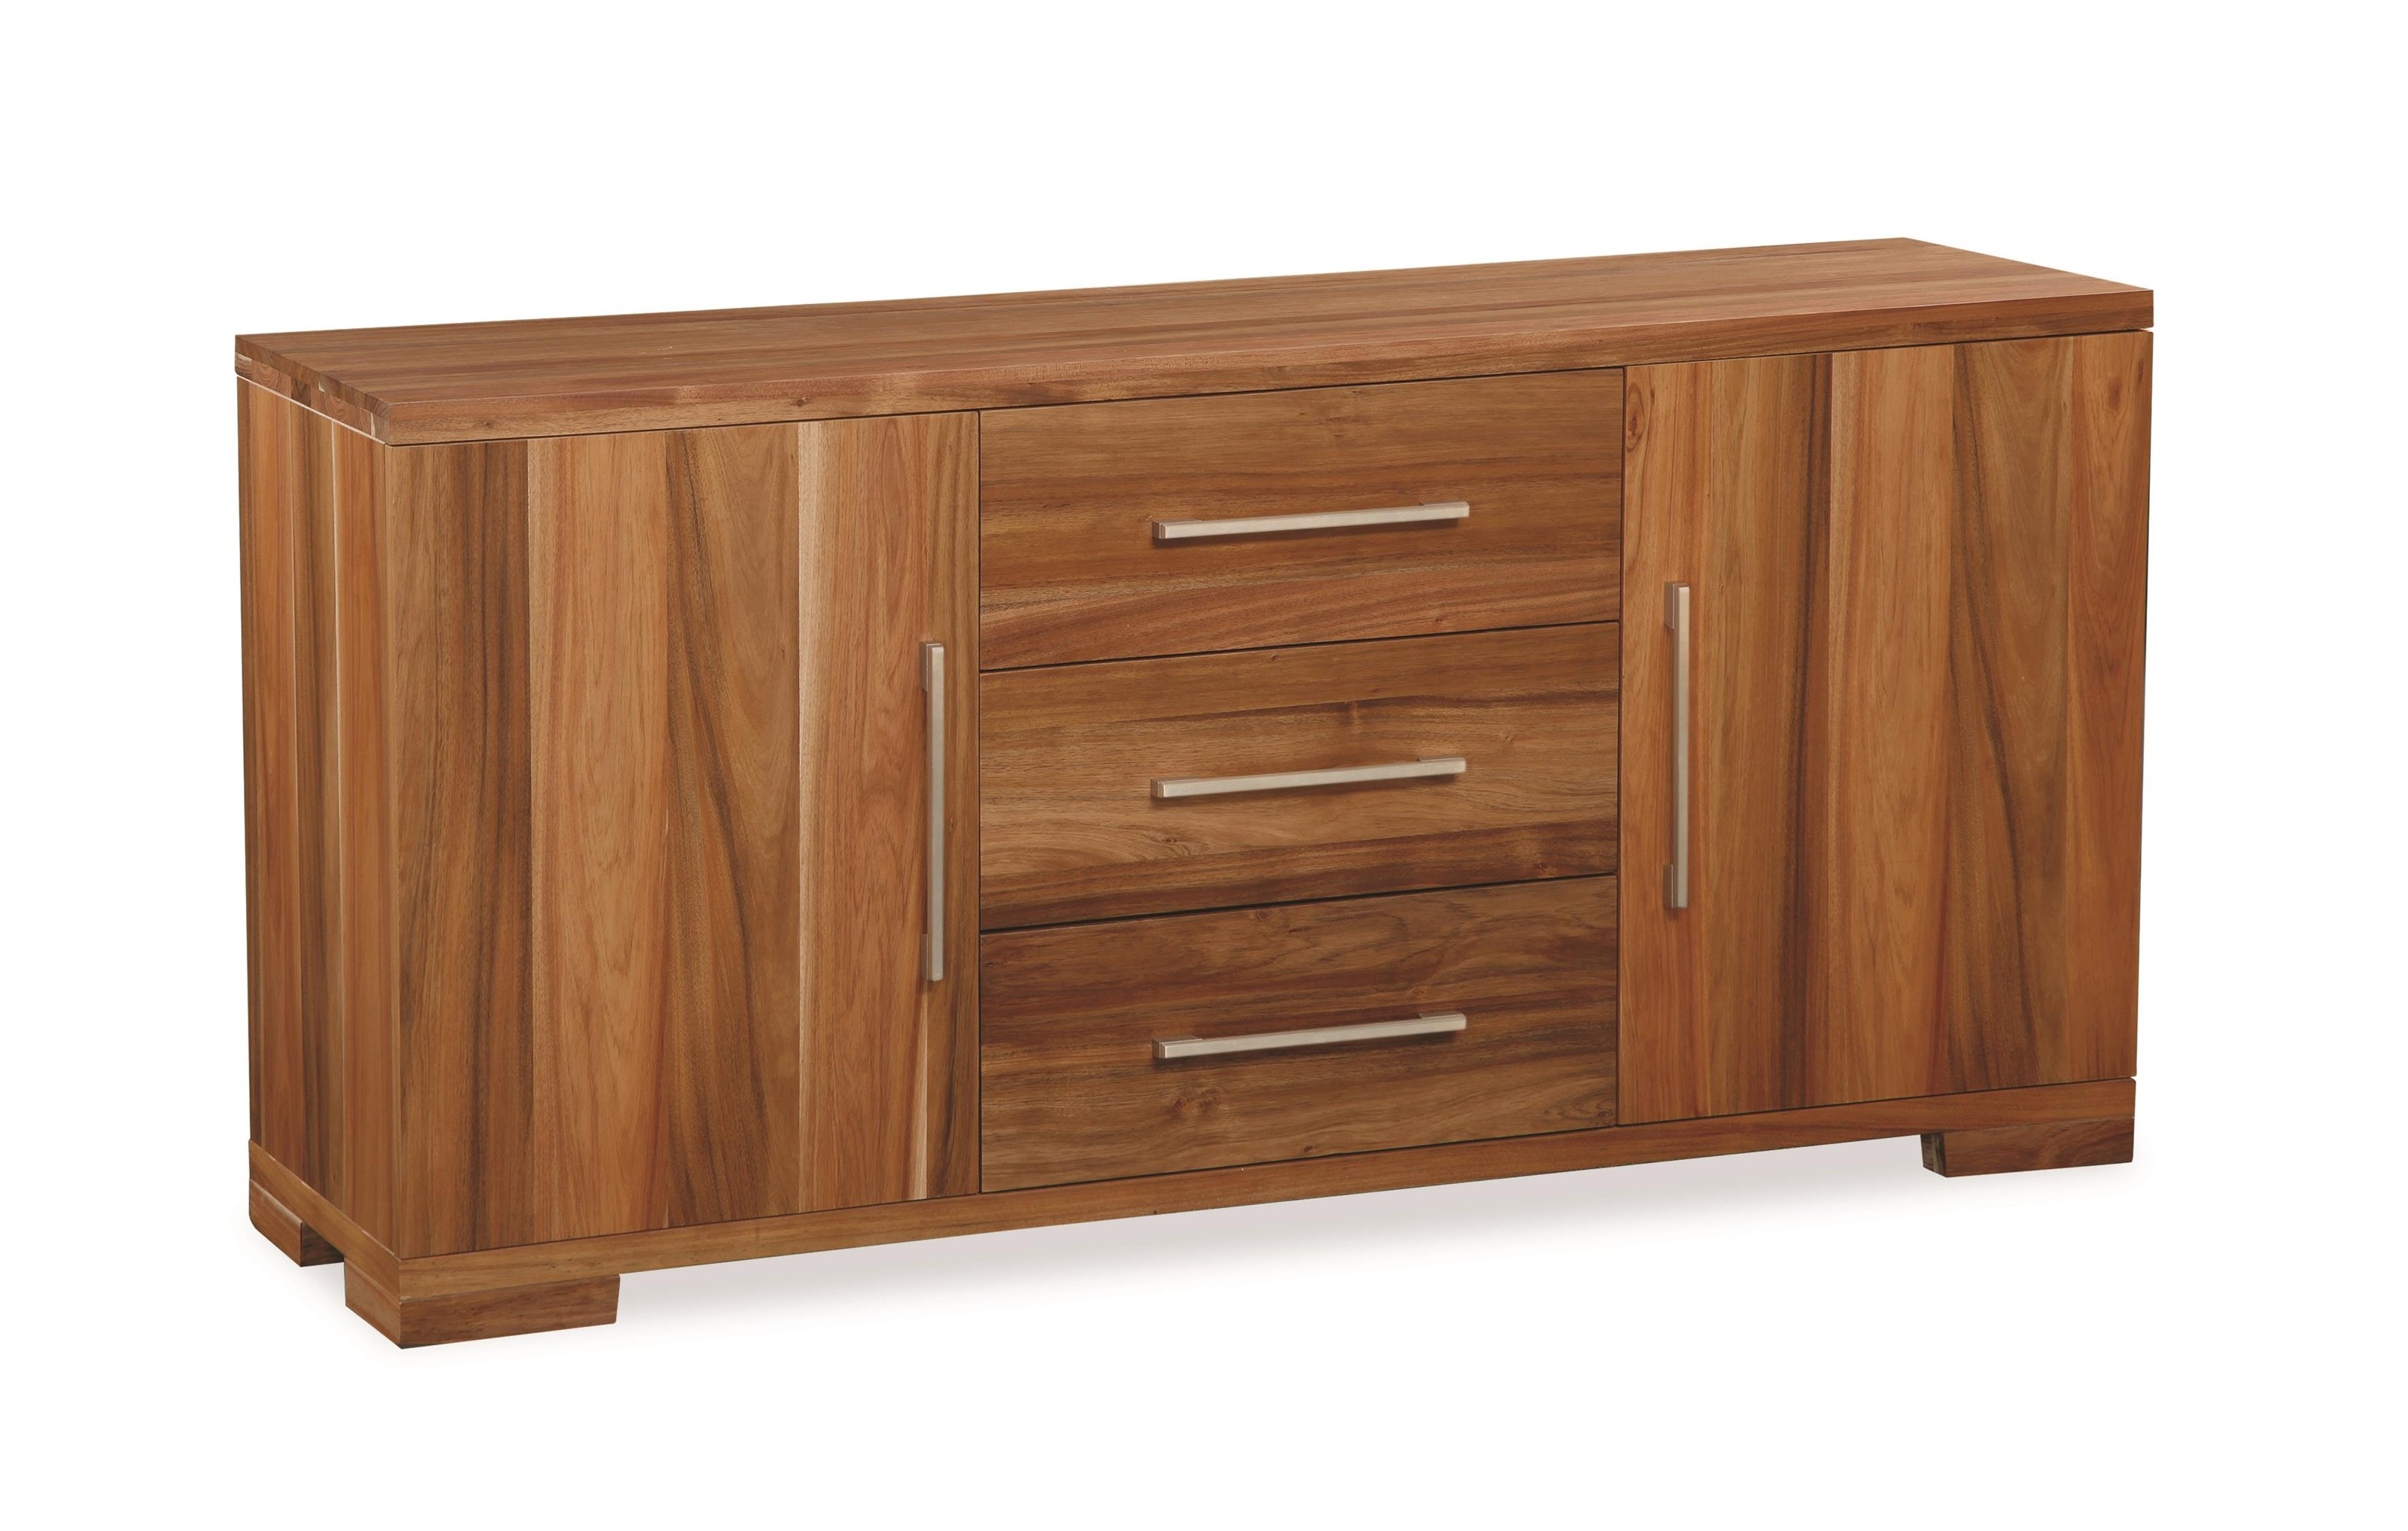 Clifton Sideboardglobal Home At Homeworld Furniture For Most Recently Released Clifton Sideboards (View 6 of 20)